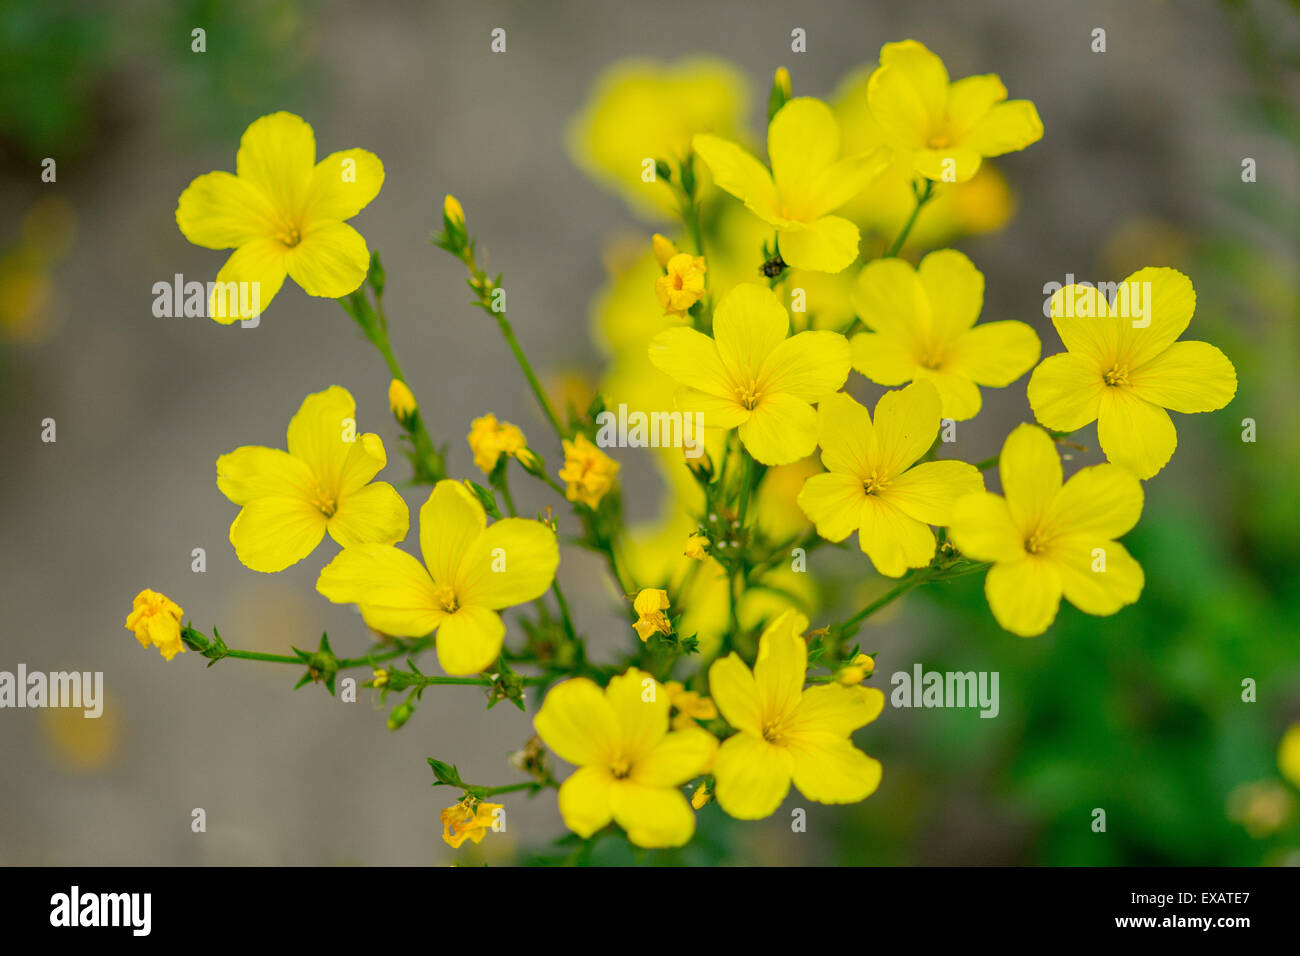 Yellow flax stock photos yellow flax stock images alamy linum flavum golden yellow flax flowers close up stock image mightylinksfo